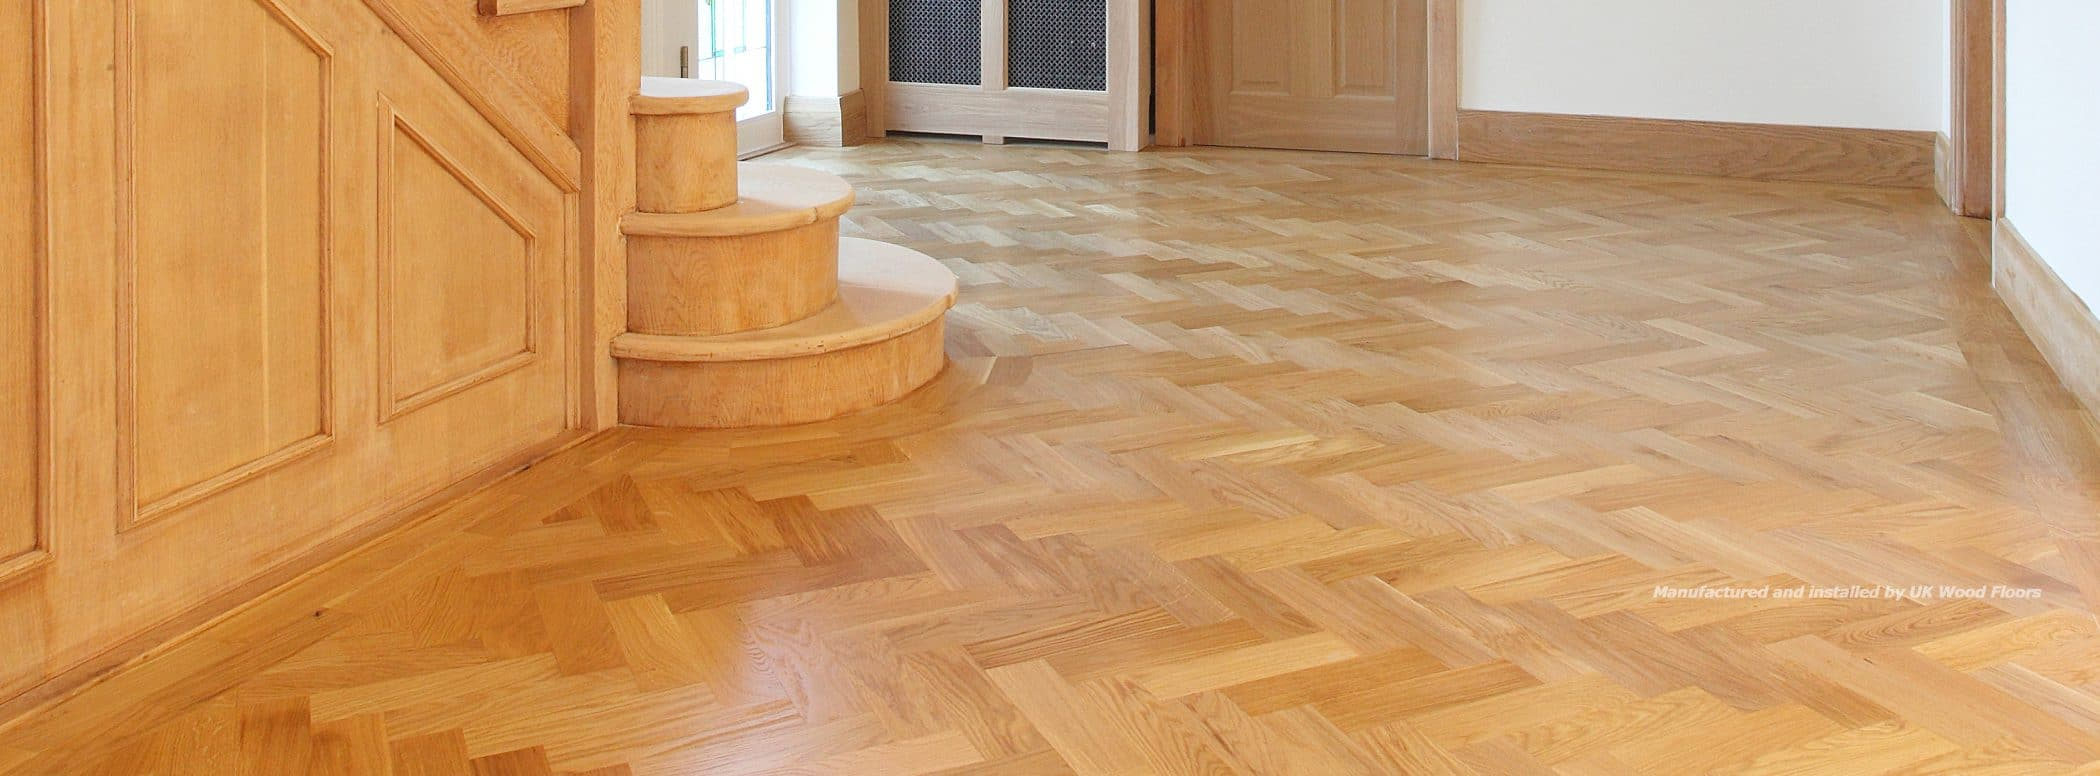 parquet blocks uk wood floors bespoke joinery. Black Bedroom Furniture Sets. Home Design Ideas